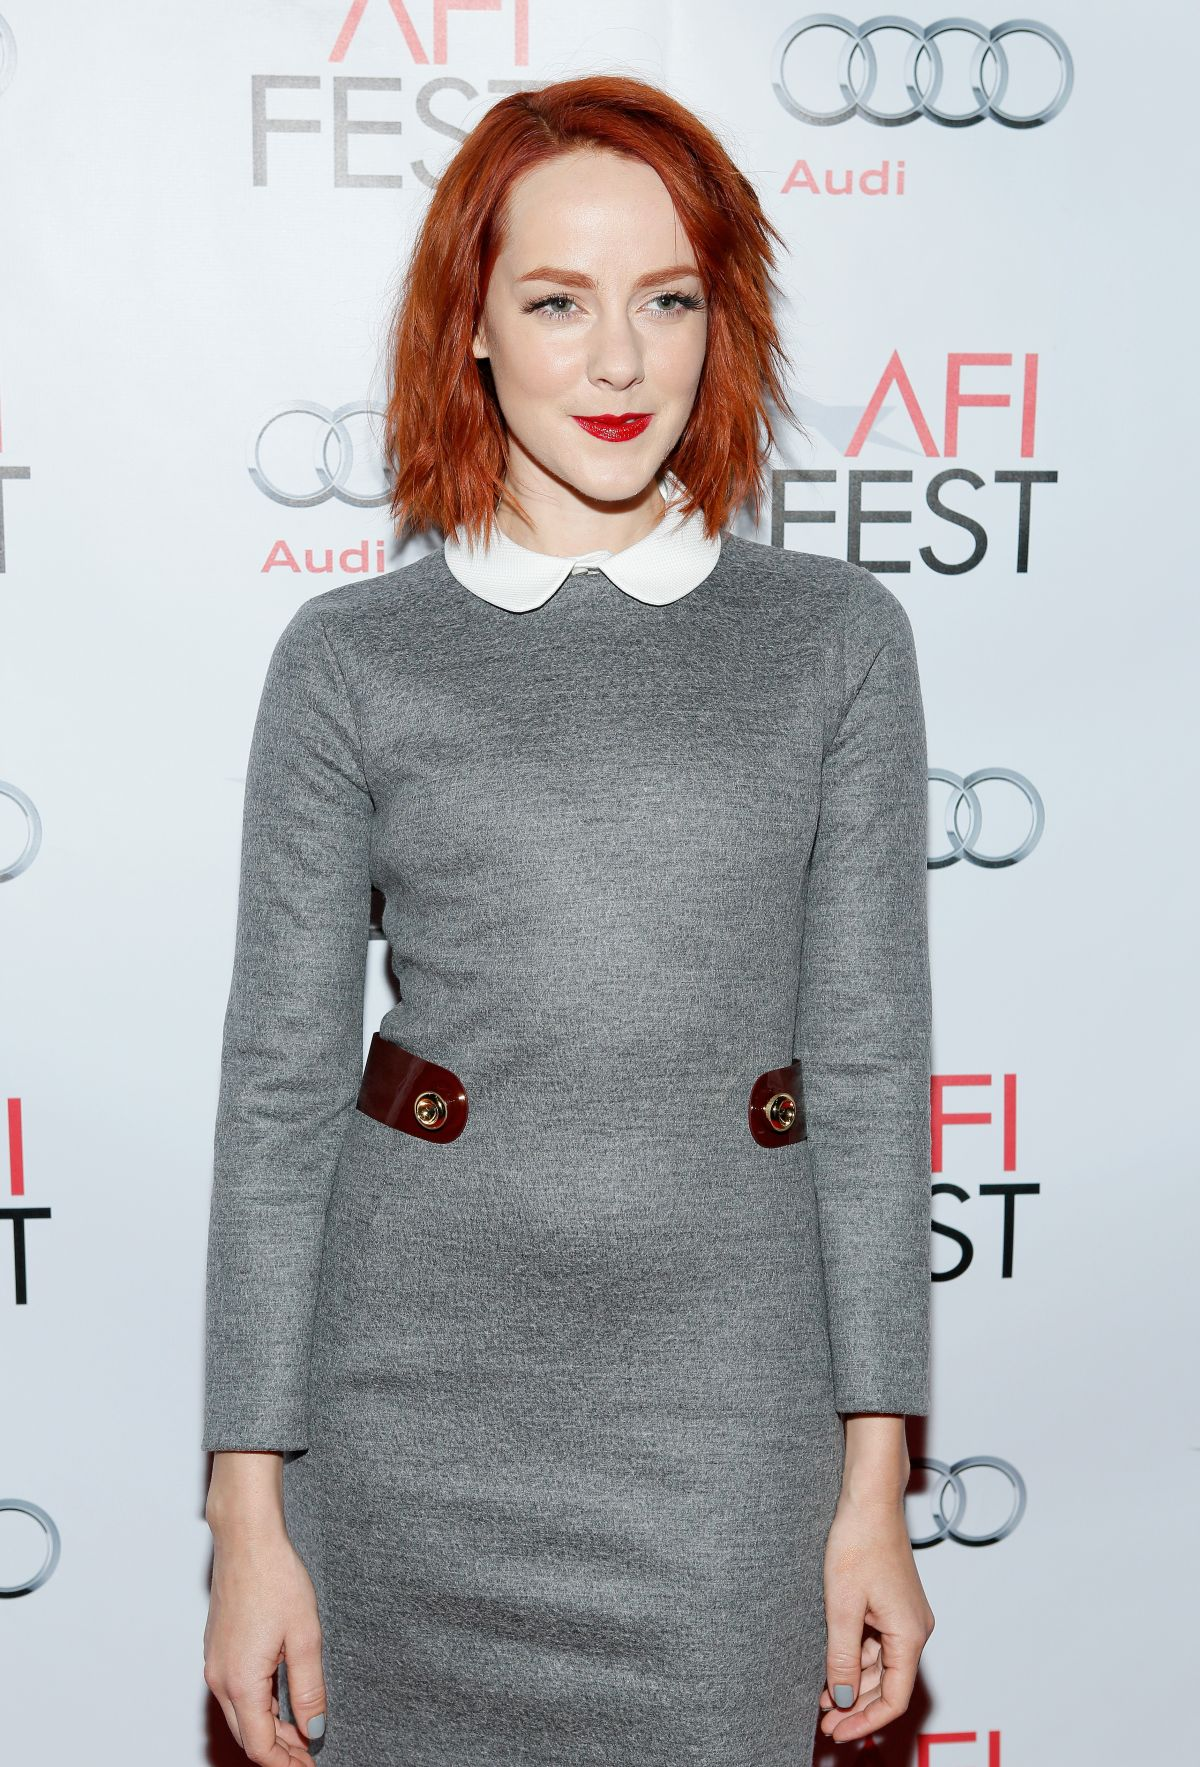 JENA MALONE at AFI Fest 2014 in Los Angeles